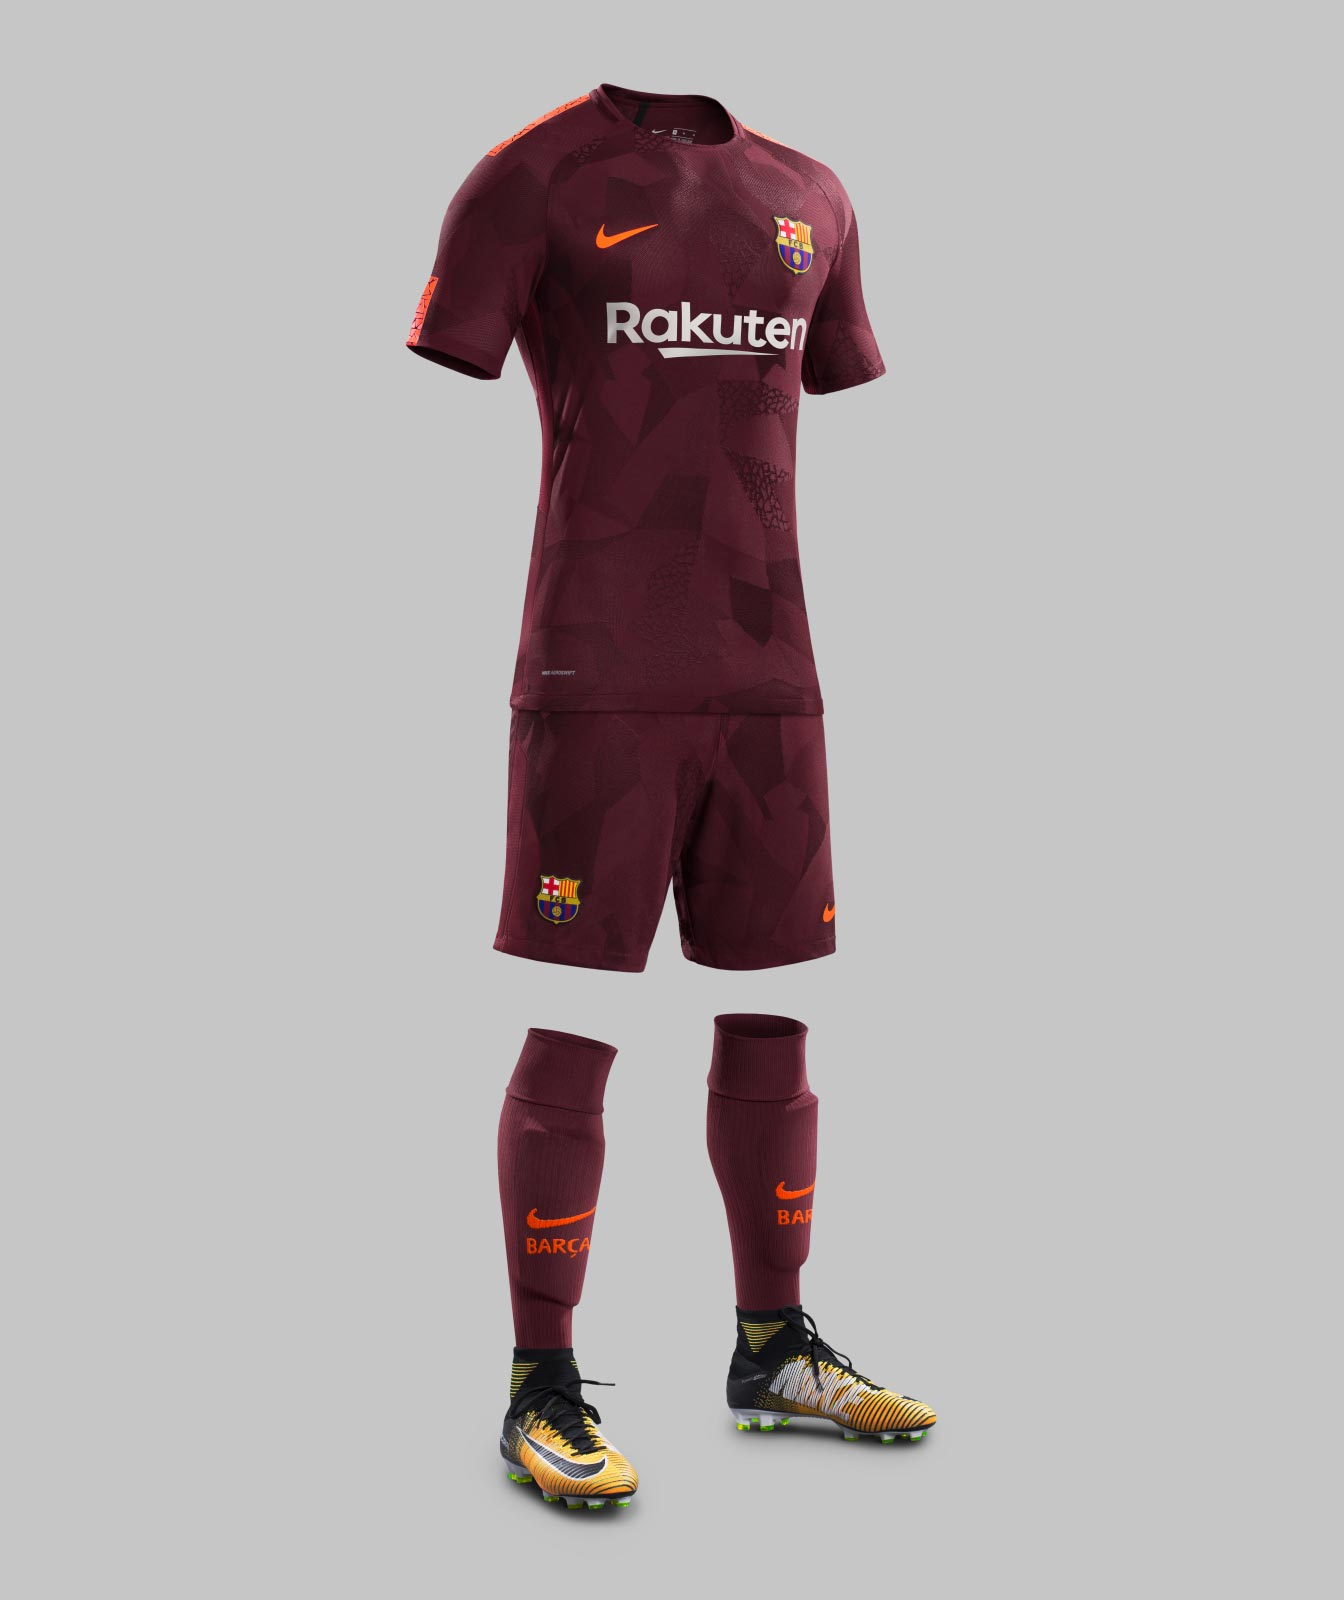 barcelona-17-18-third-kit-3.jpg